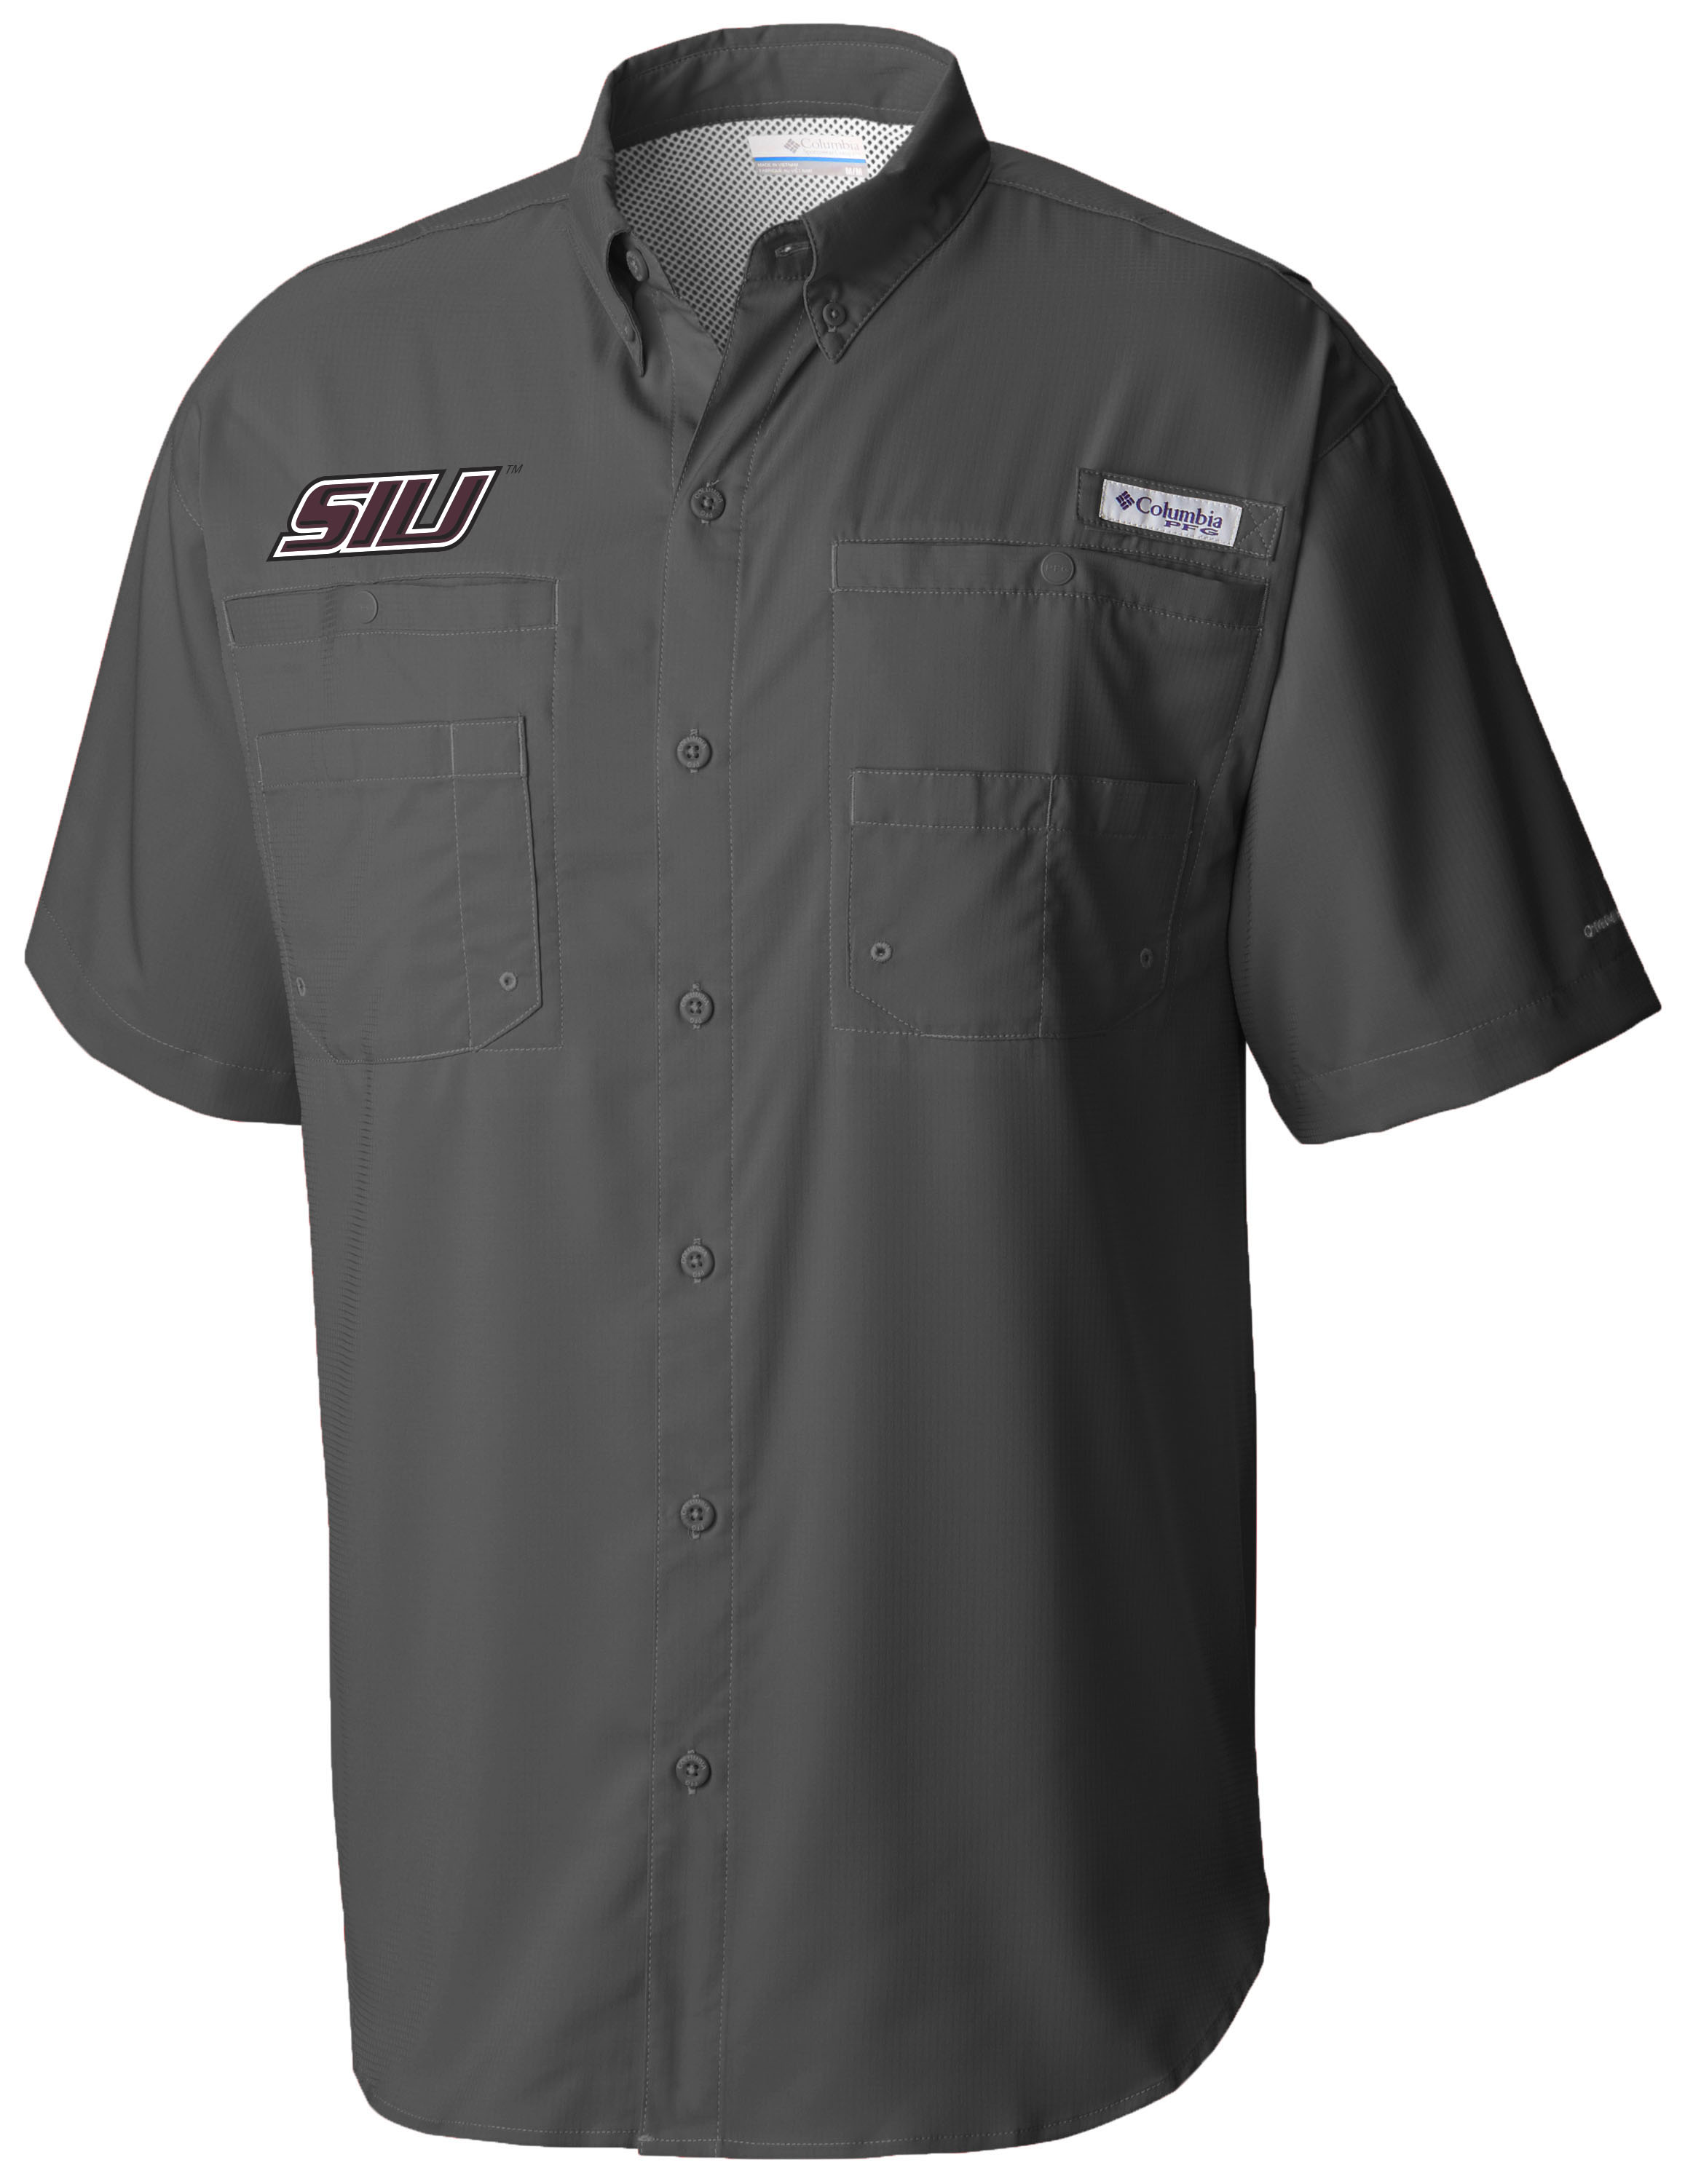 Image for the COLUMBIA® SIU GREY PFG FISHING VENTED SHIRT product